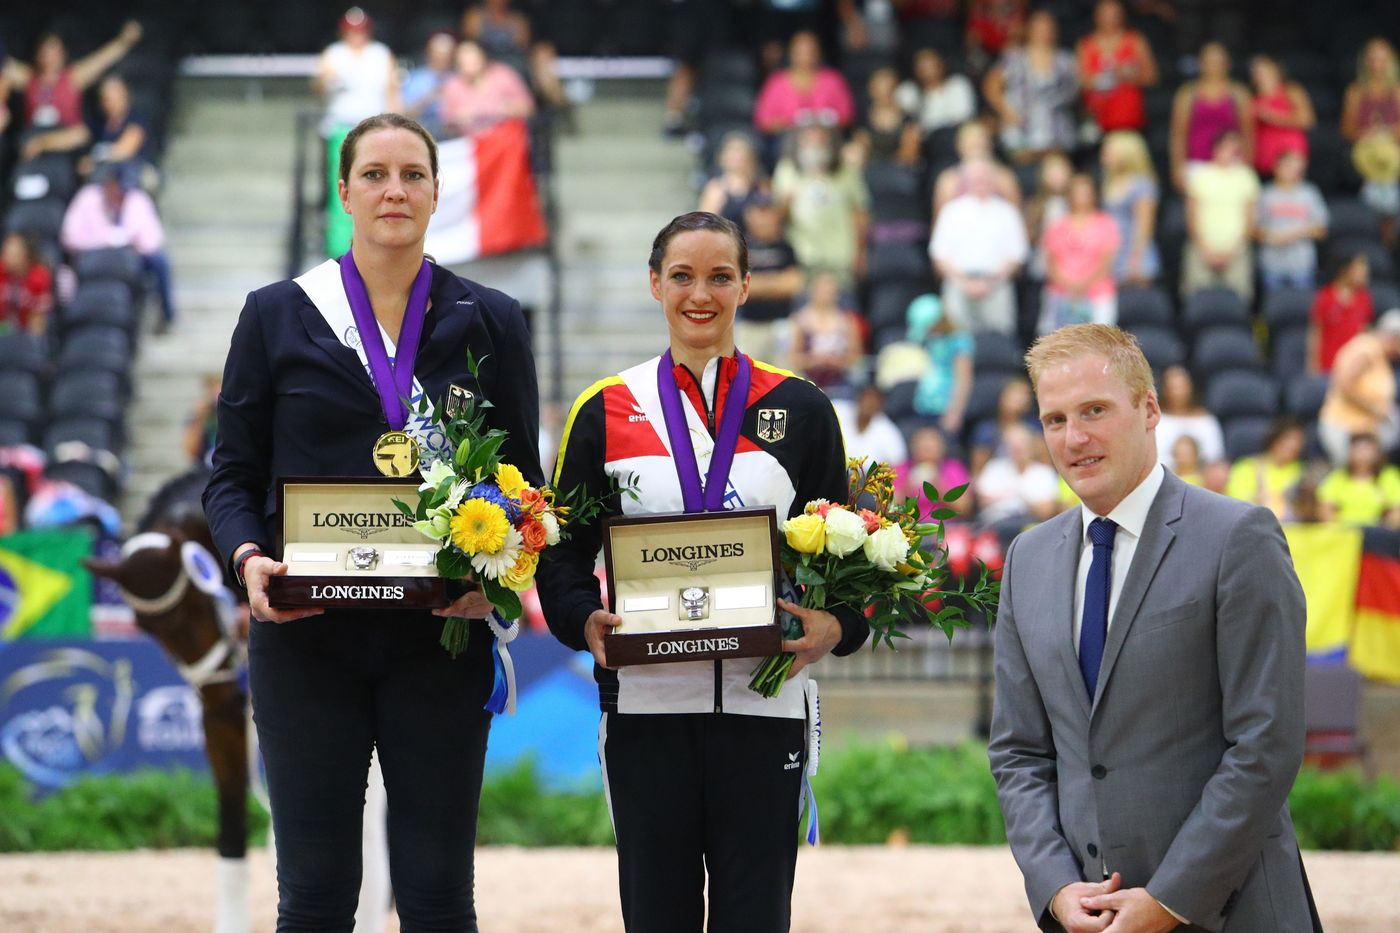 Longines Show Jumping Event: The FEI World Equestrian Games ended beautifully with Germany topping the medal table   4